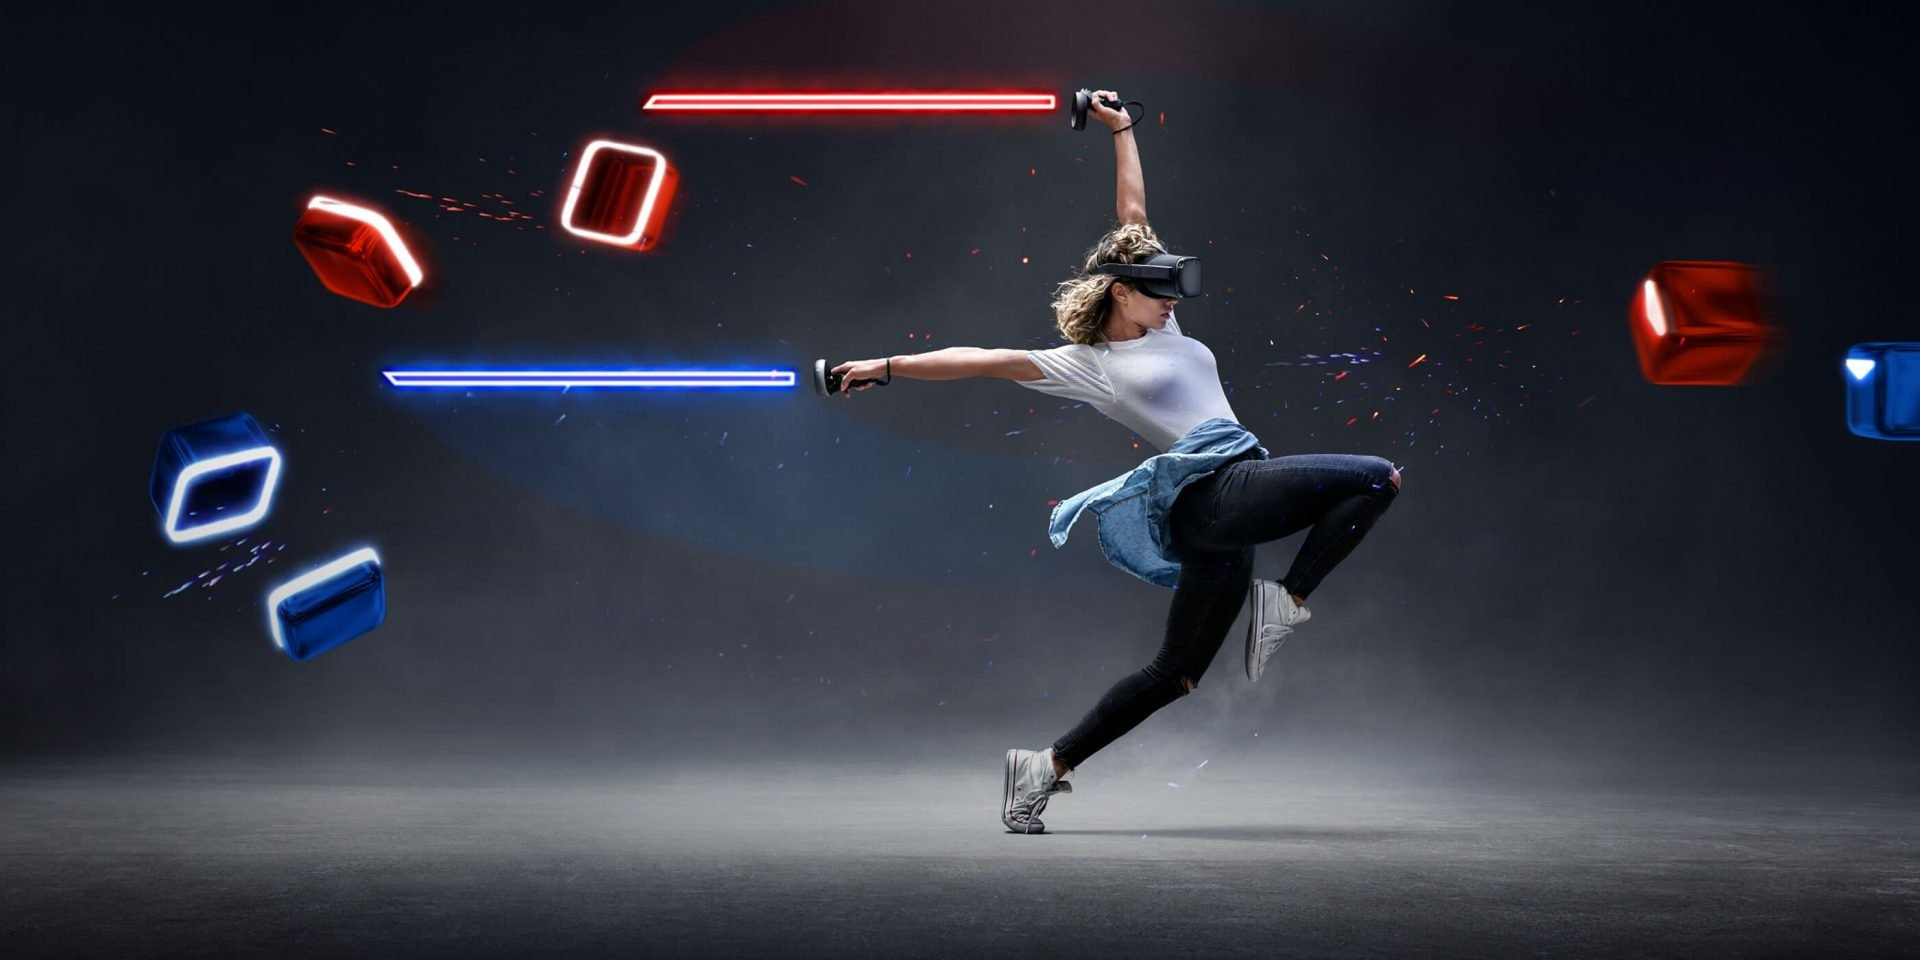 OculusQuest-BeatSaber-1920x960.jpg